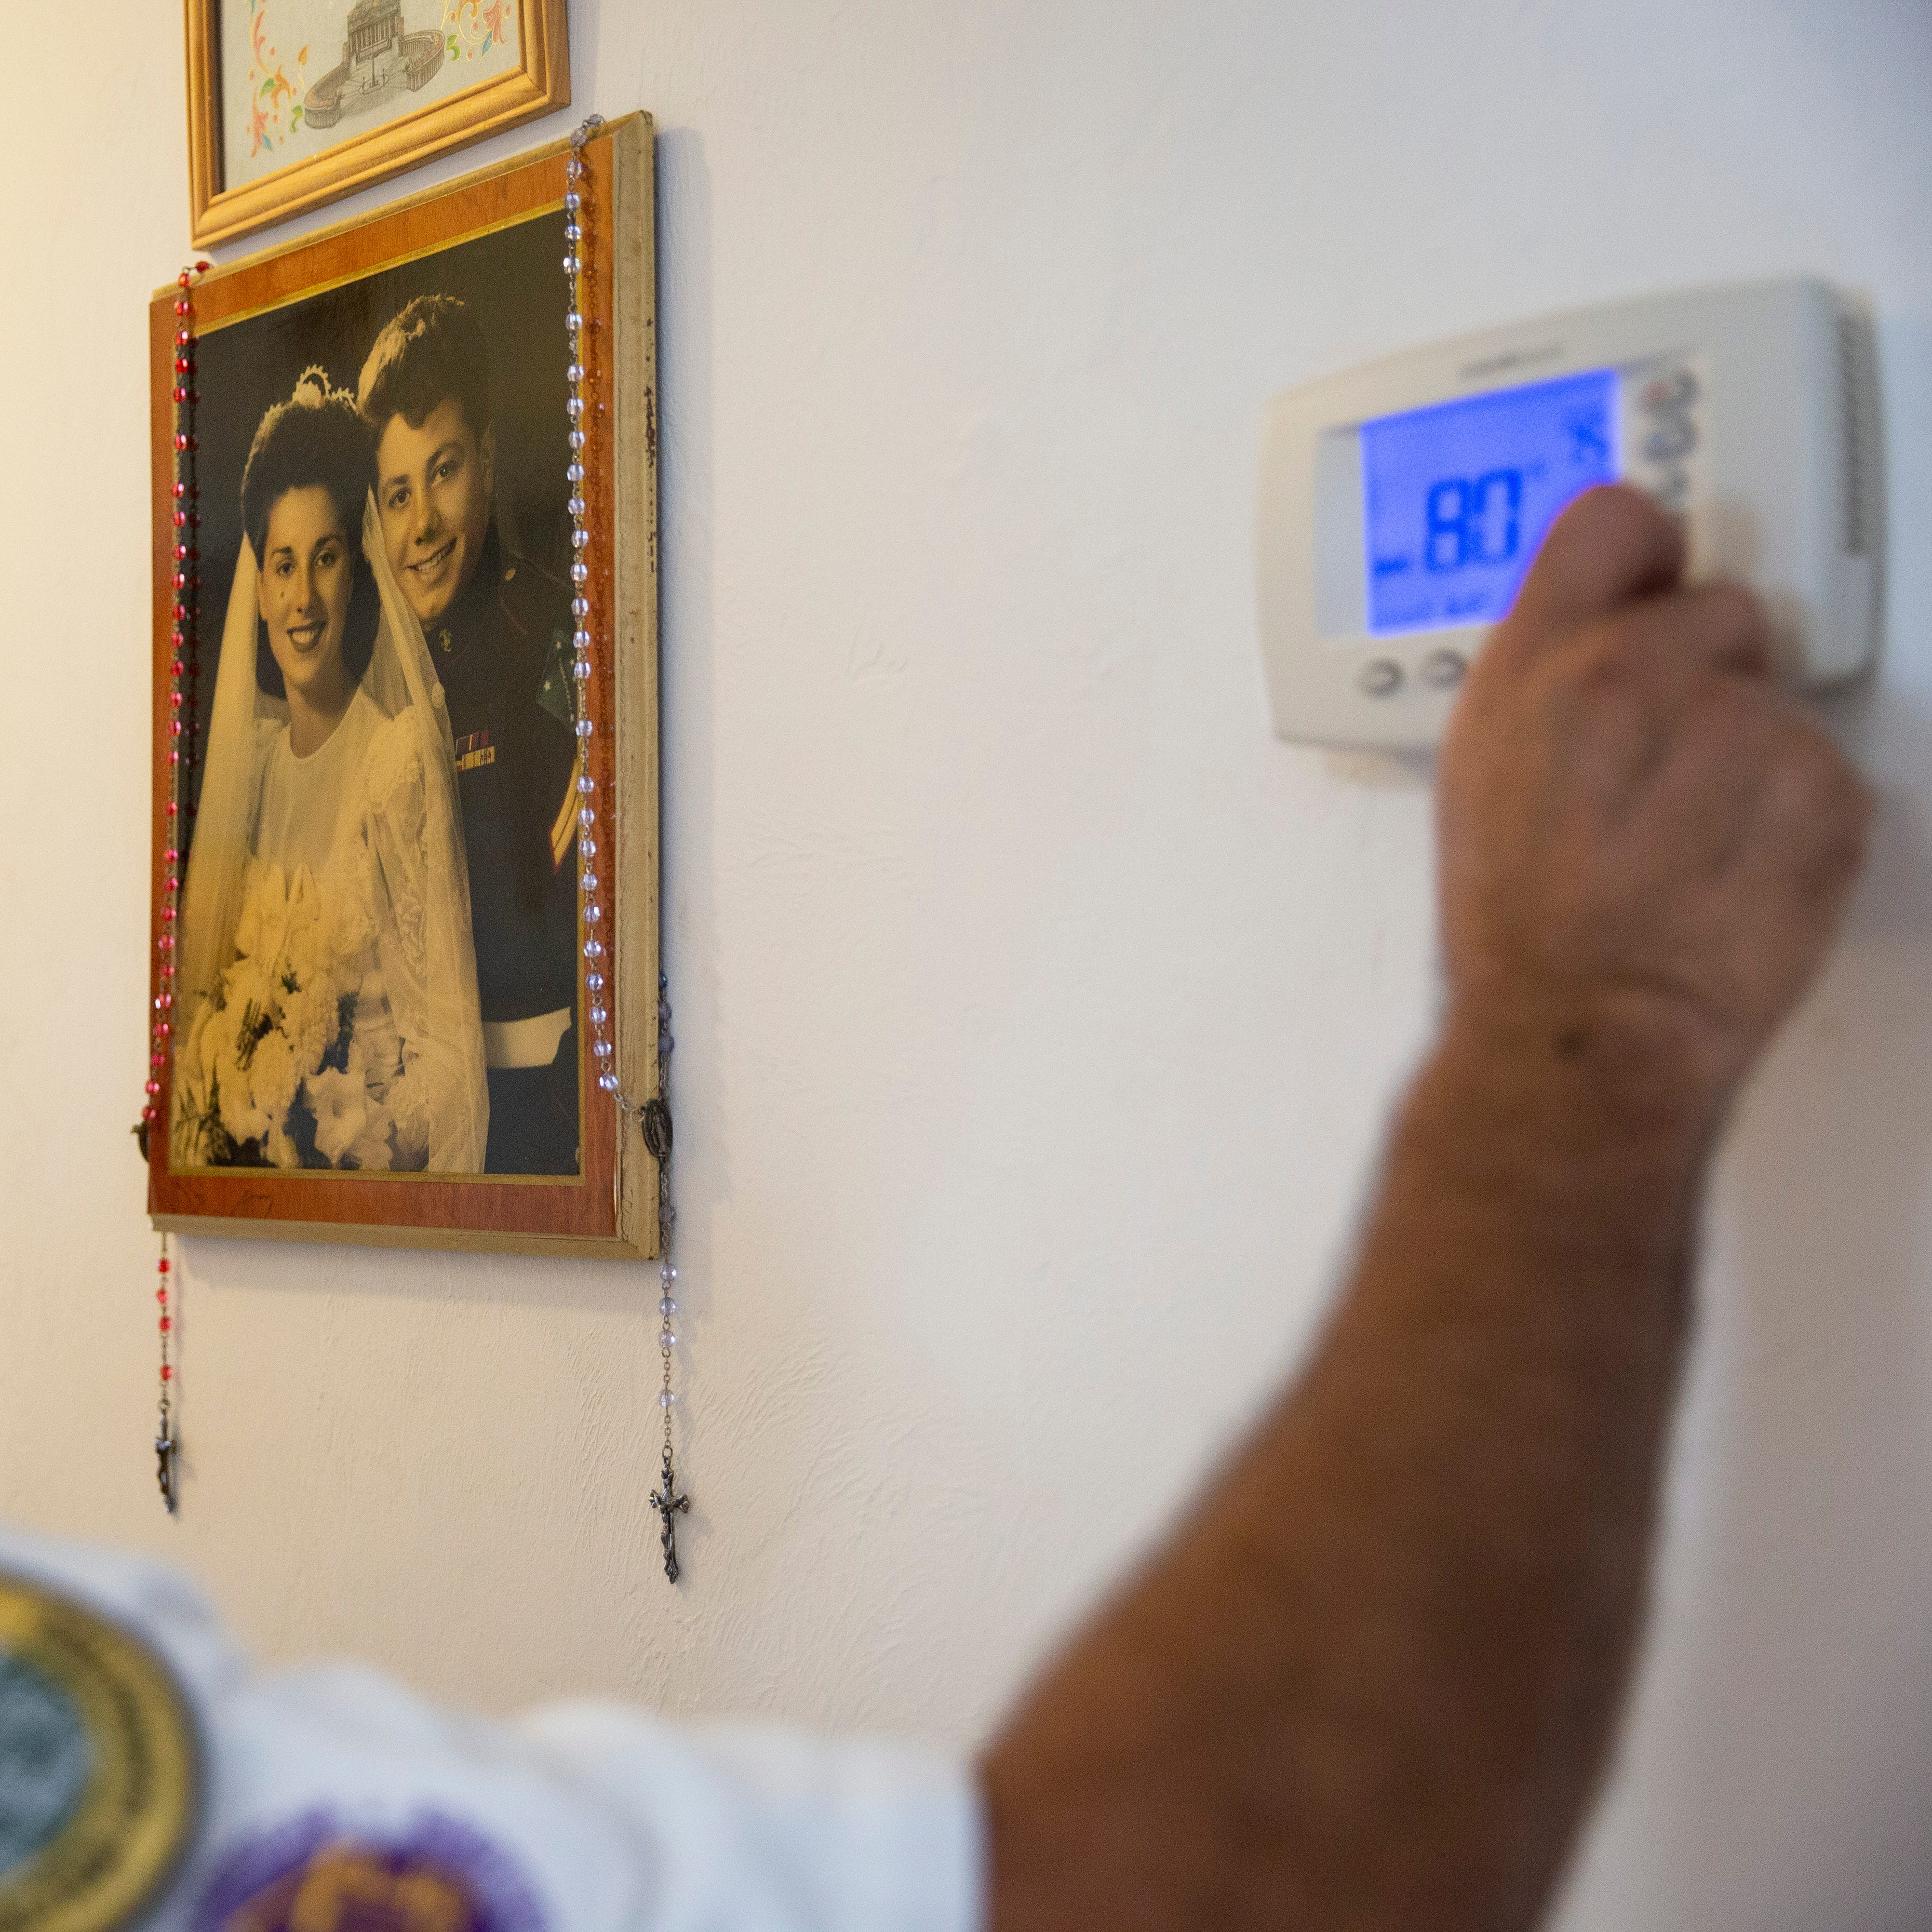 No charge: One Hour Air gives WWII veteran, wife a new air conditioning system